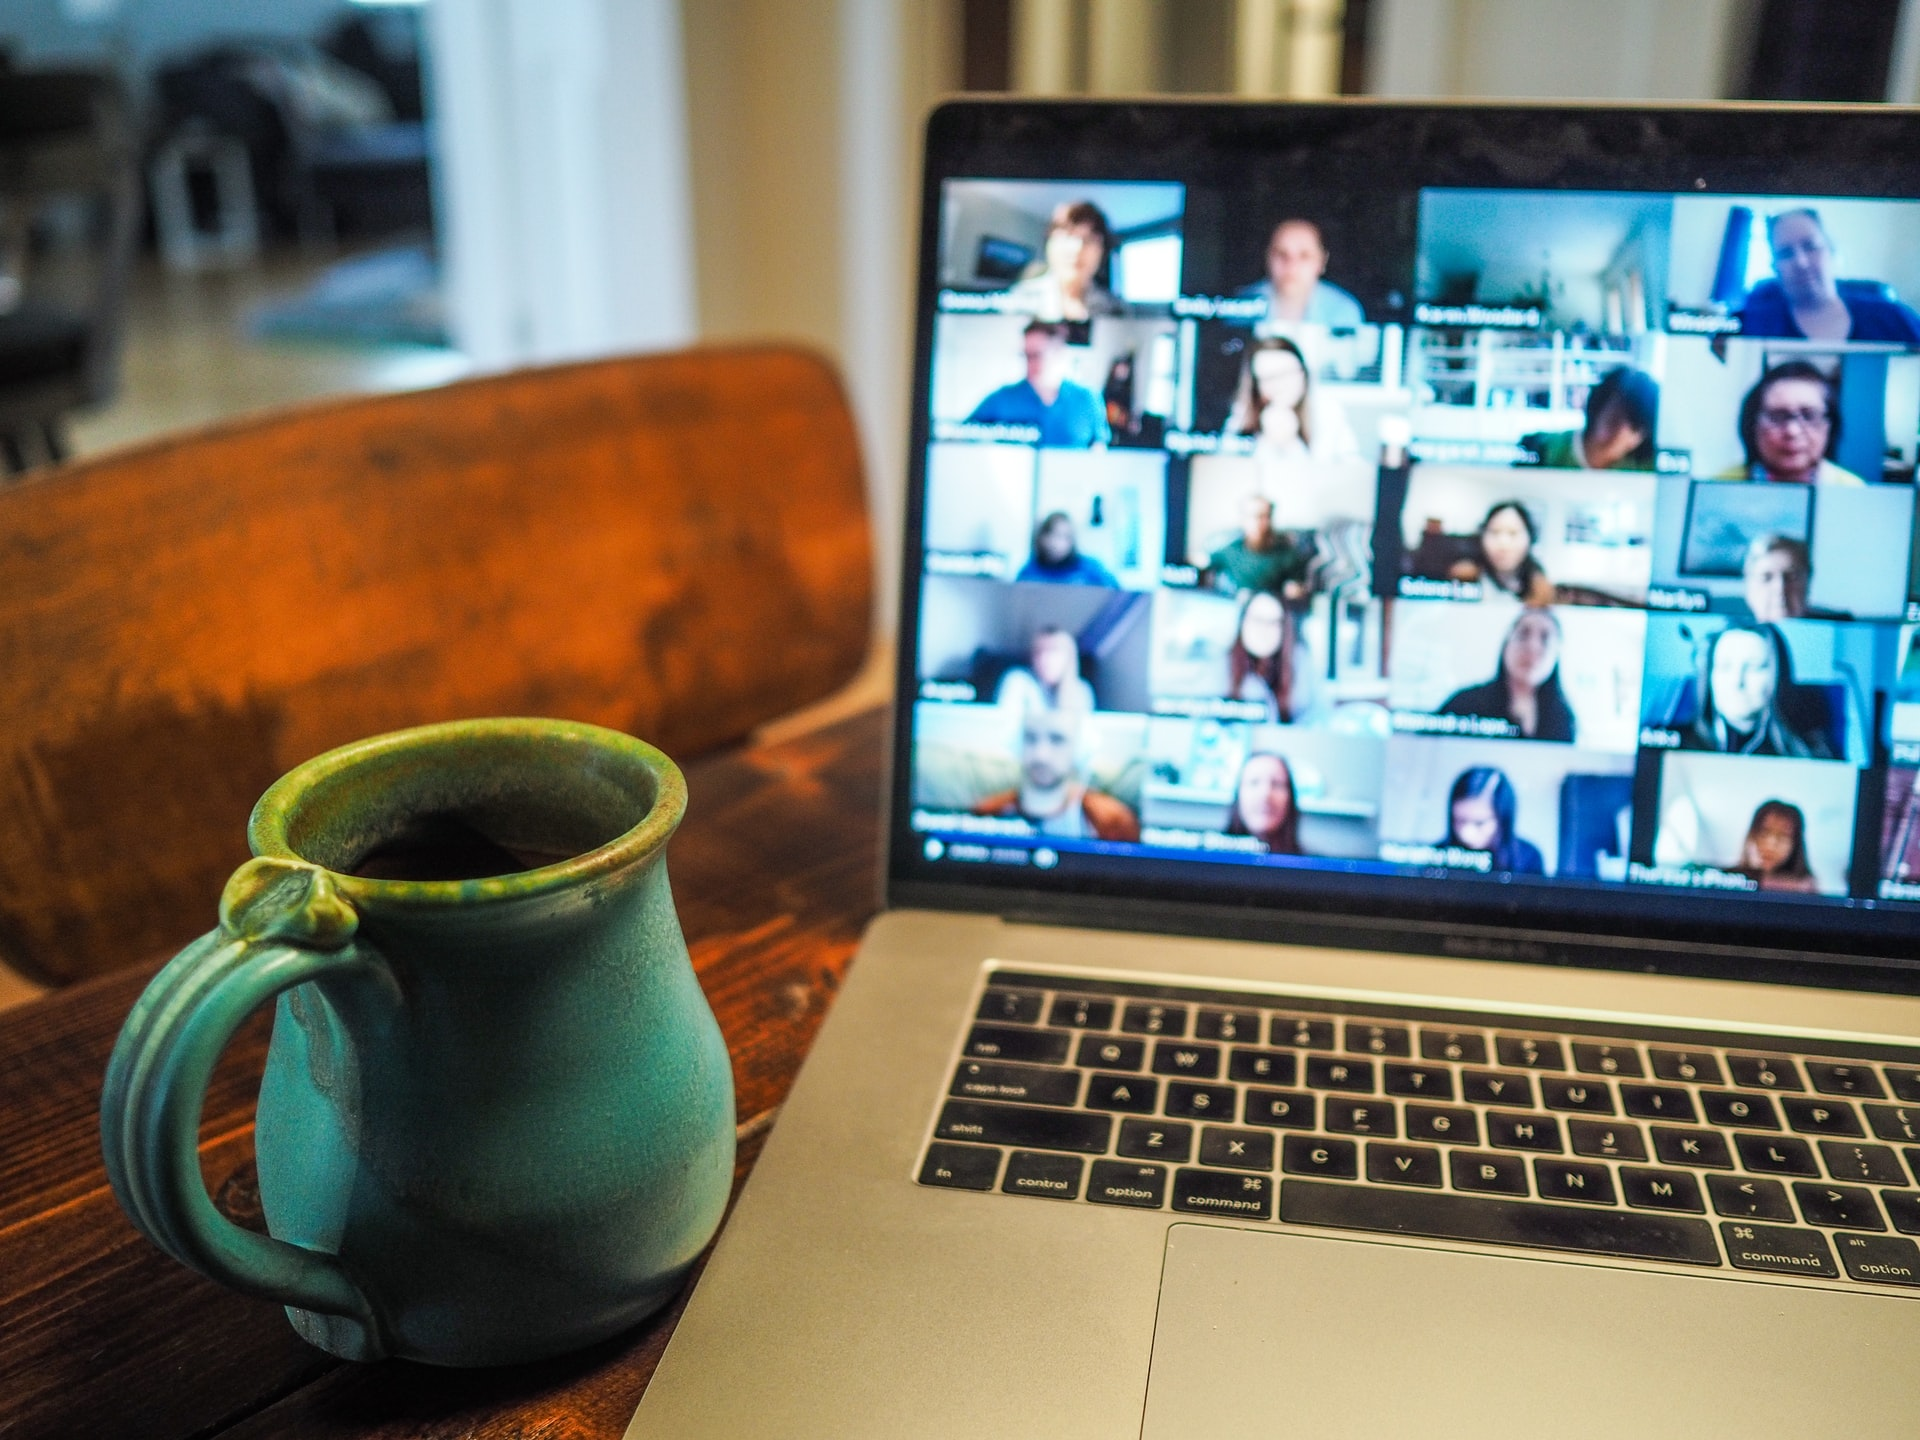 conferencing-remotely-in-2020-article-husky-executive